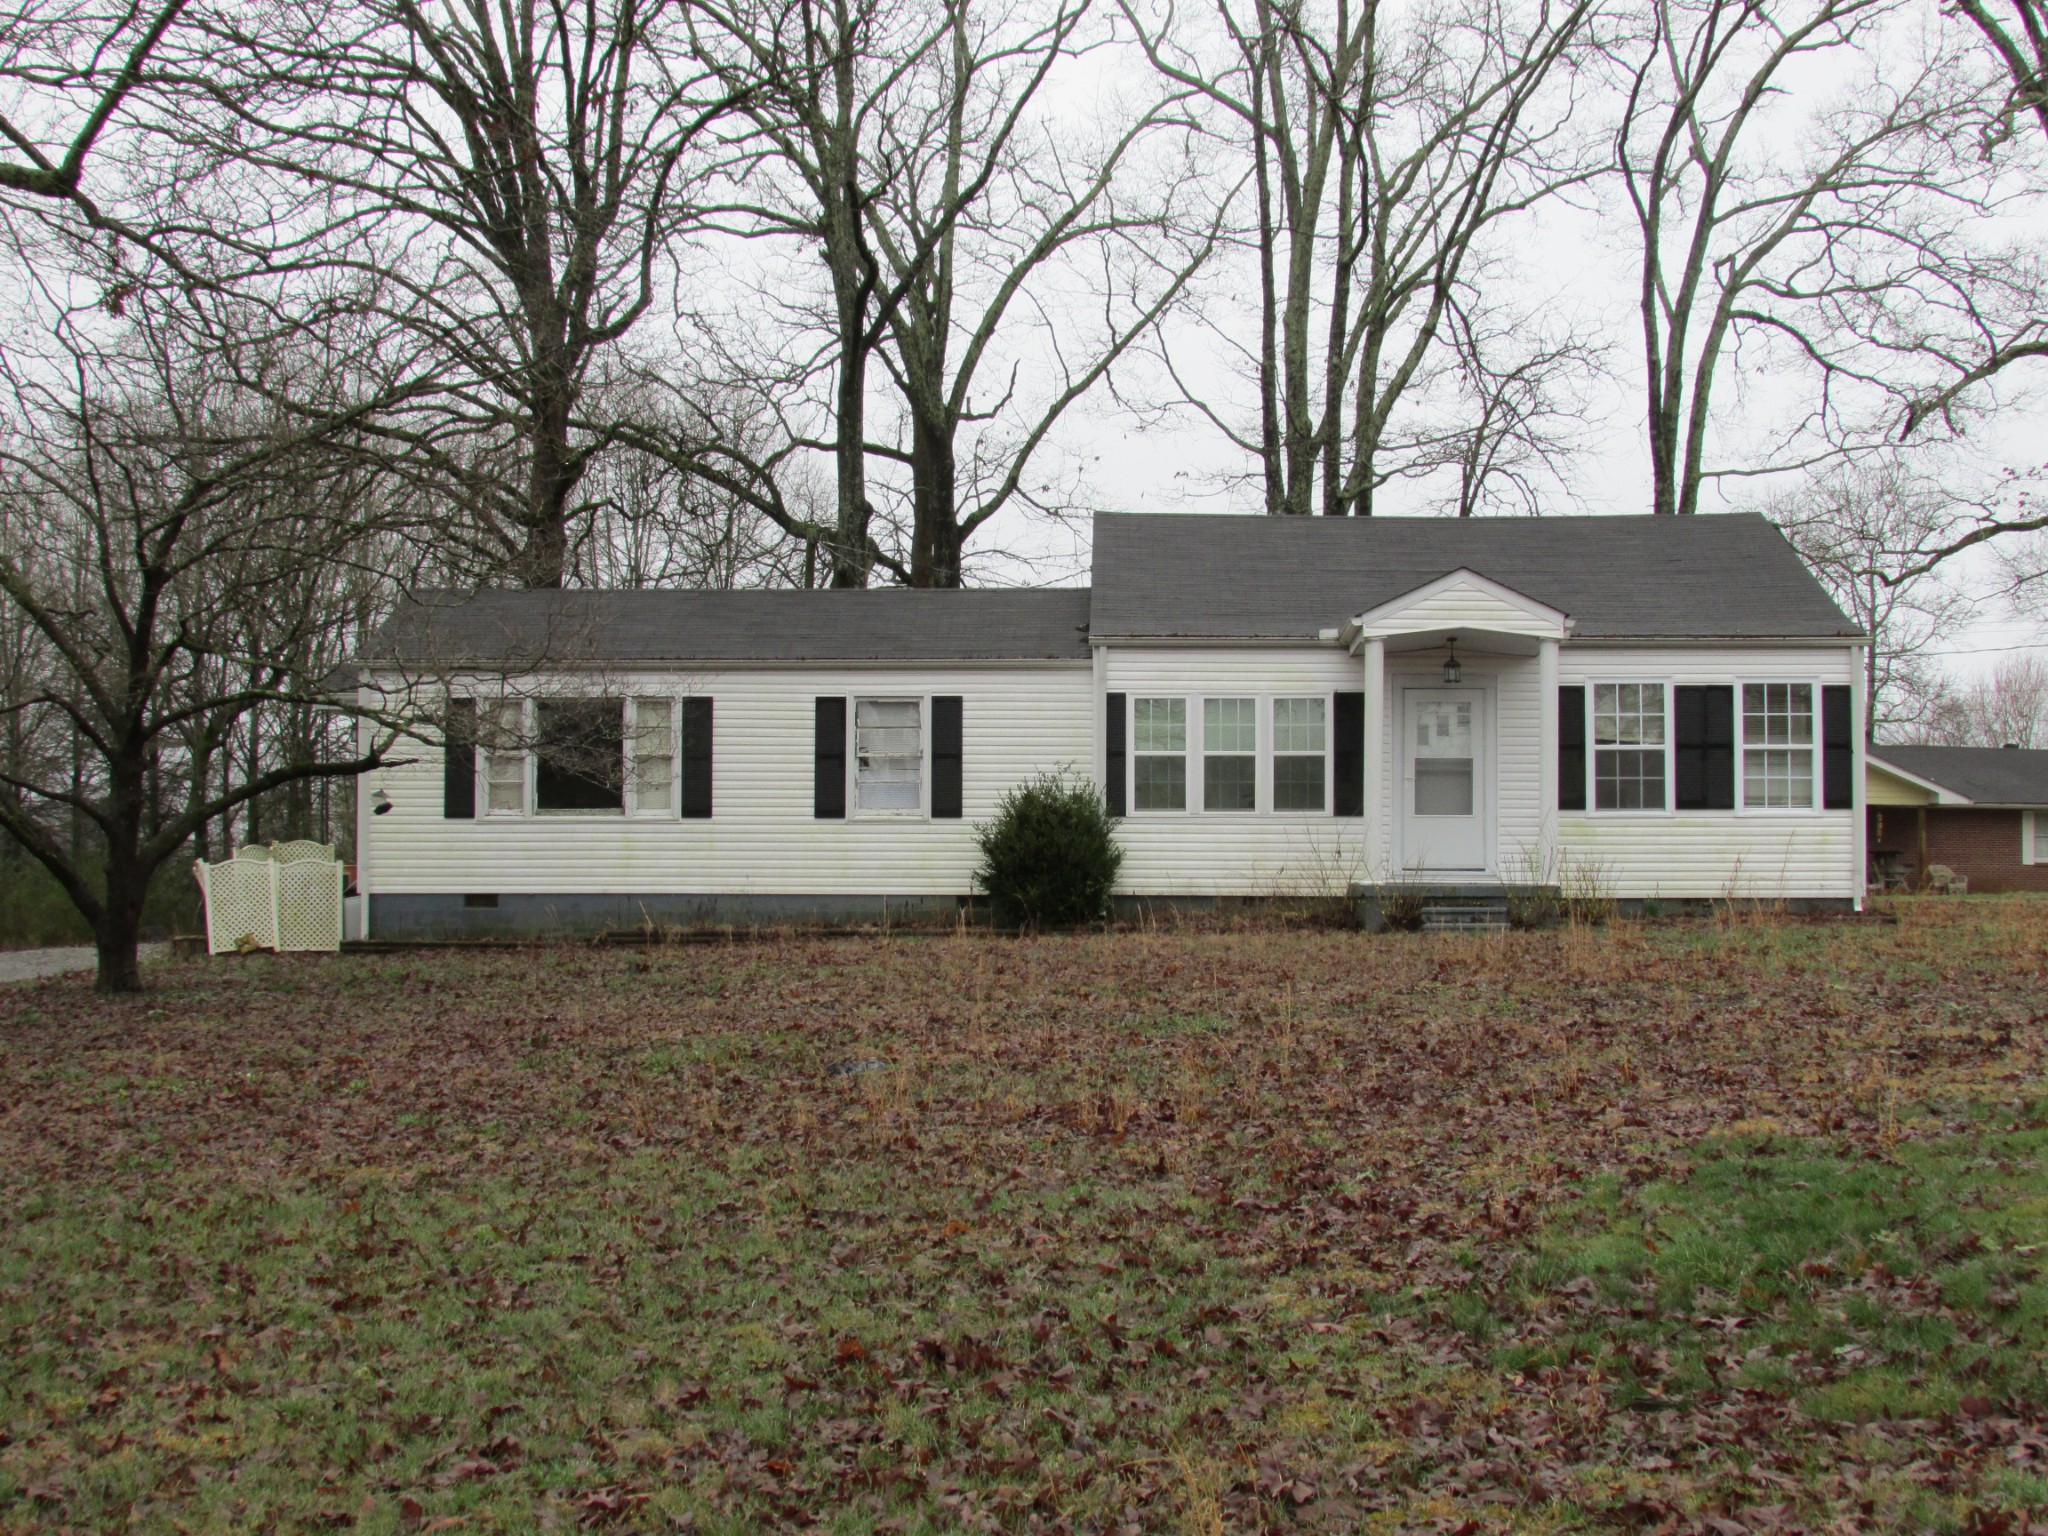 4372 New Manchester Hwy, Tullahoma, TN 37388 - Tullahoma, TN real estate listing